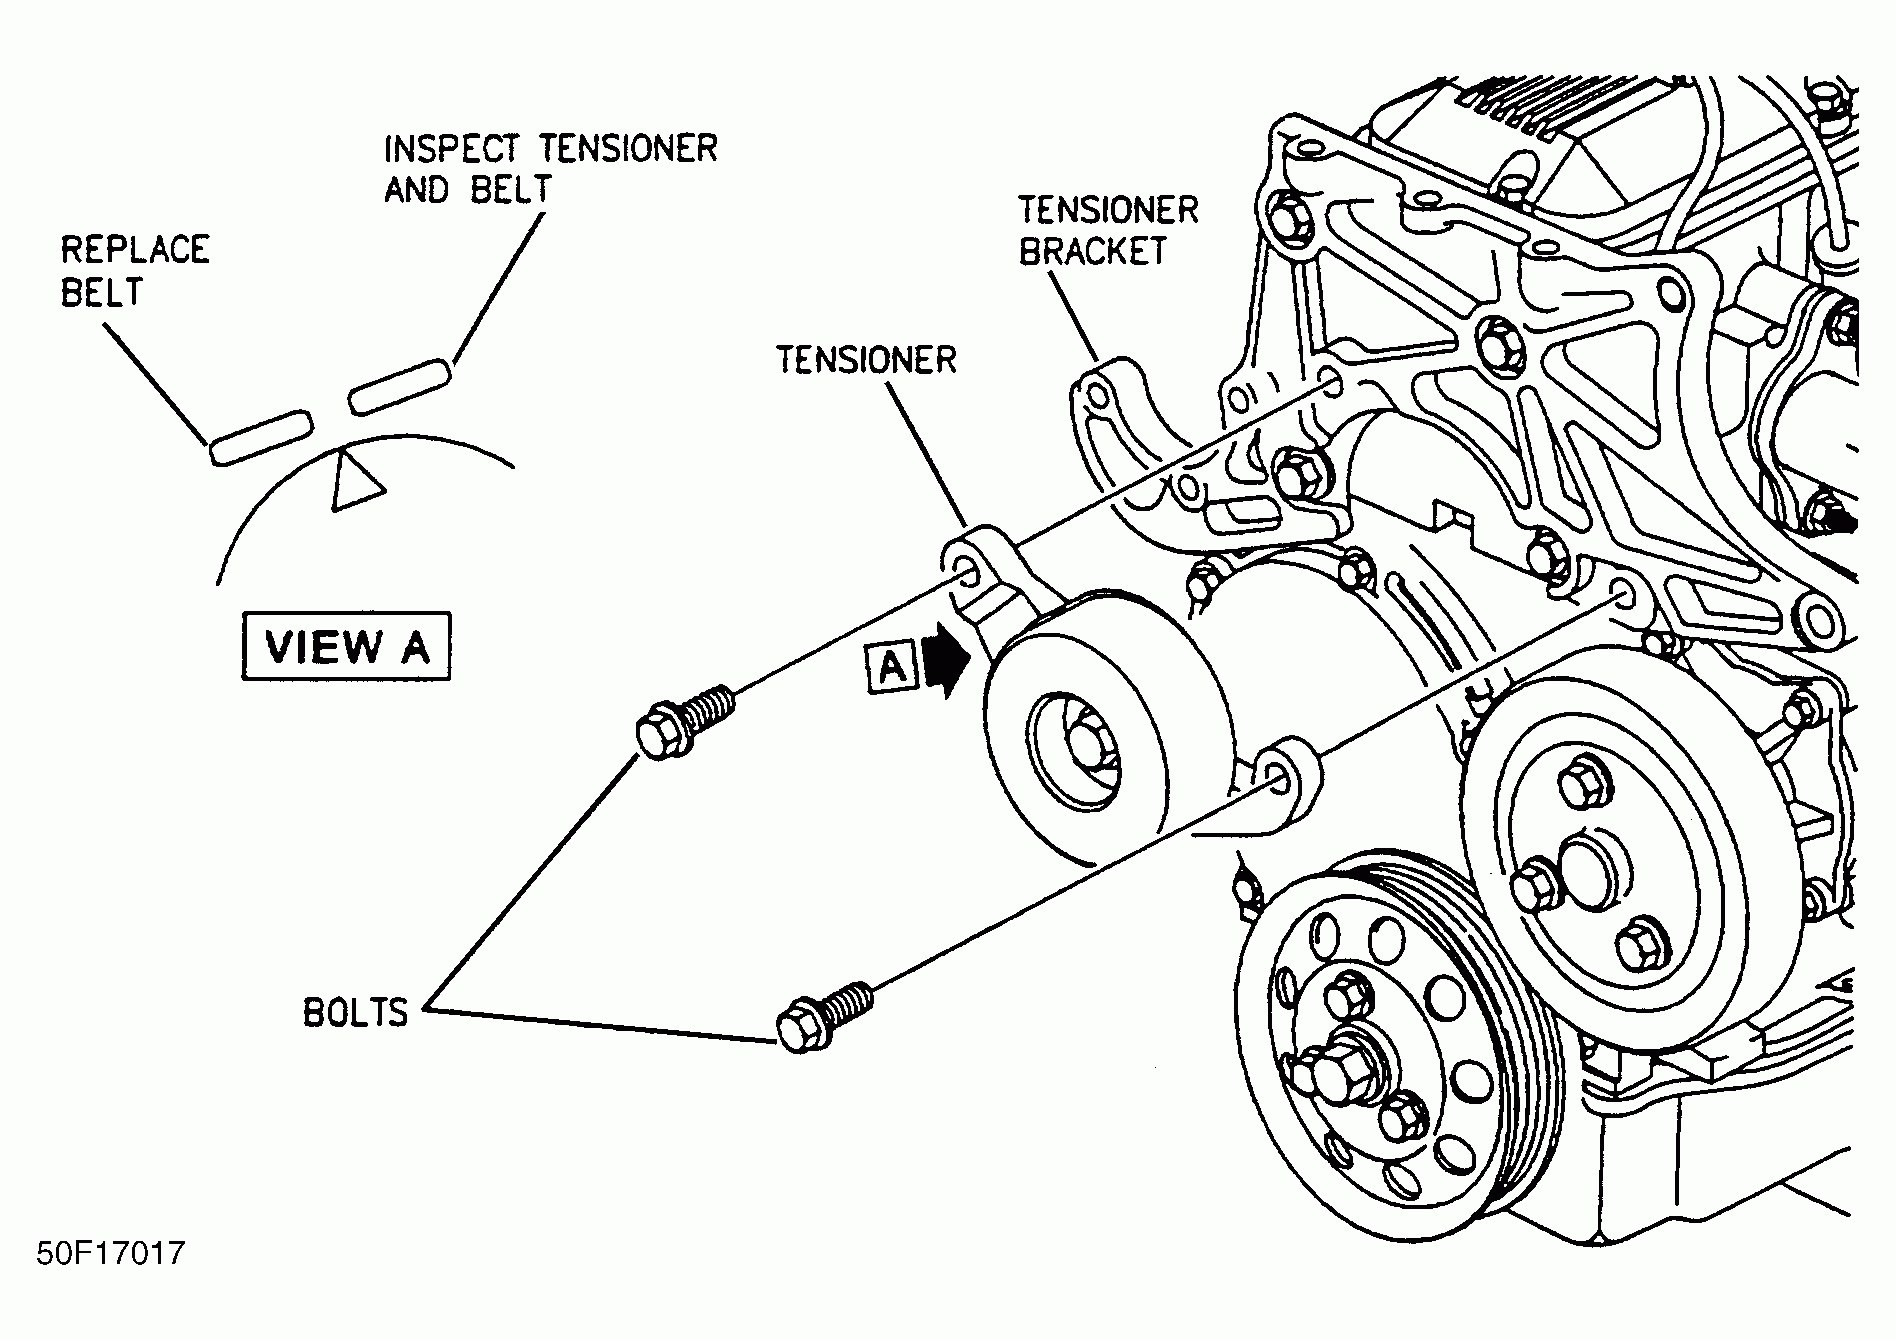 2001 Saturn Sl2 Engine Diagram 1997 Saturn Sc2 Engine Diagram Wiring Diagram Paper Of 2001 Saturn Sl2 Engine Diagram